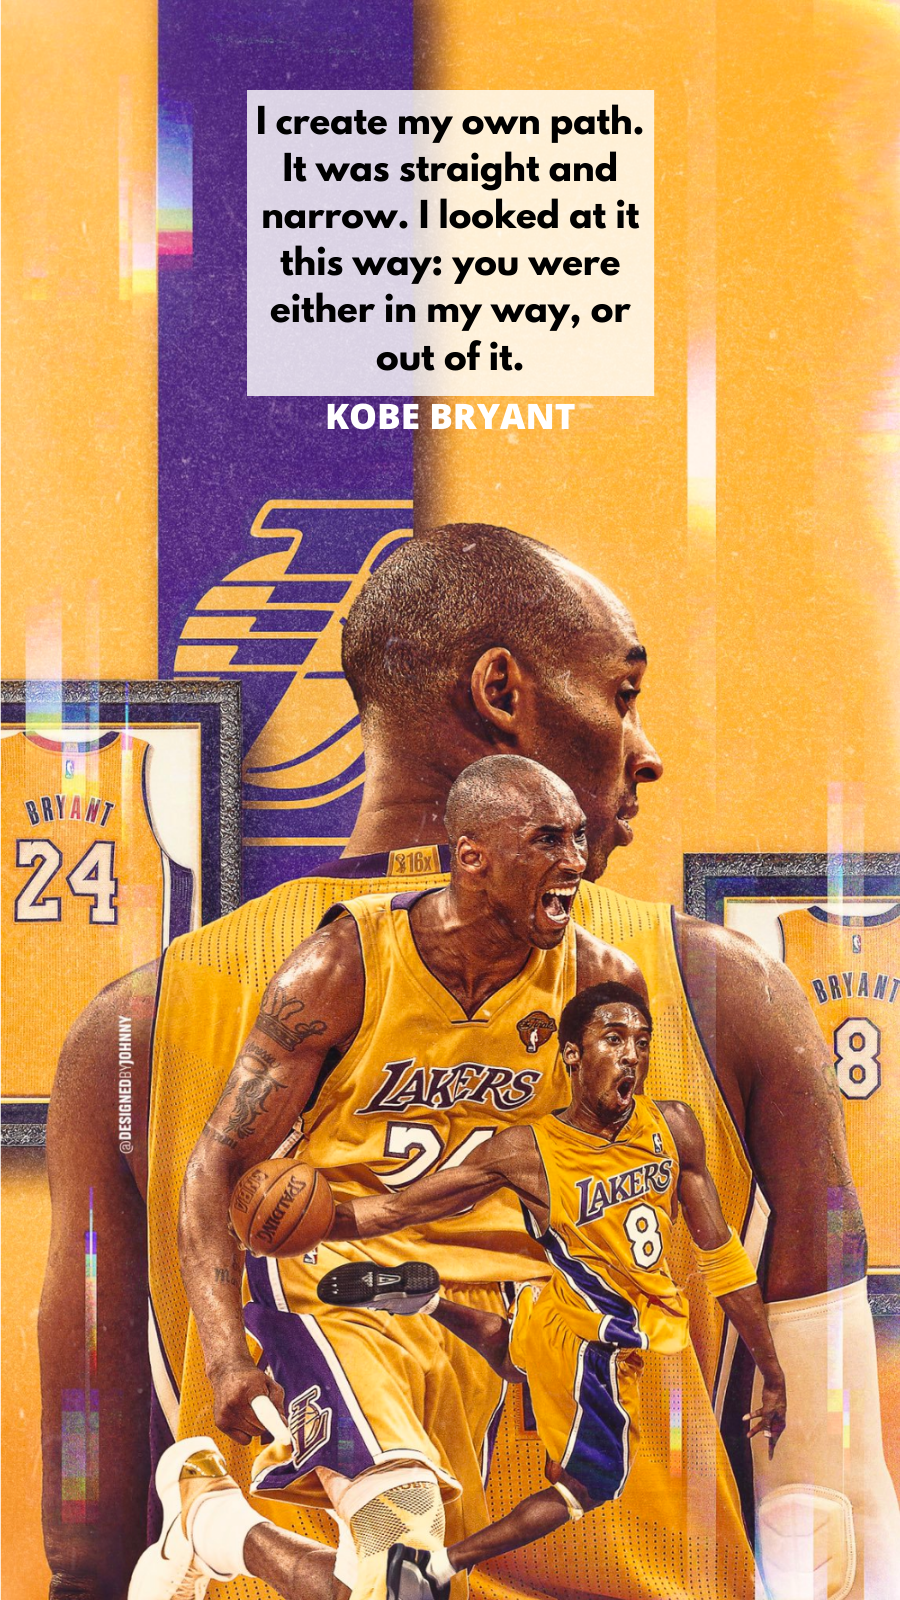 Having A Kobe Bryant Wallpaper Would Be A Great Way Kobe Bryant 900x1600 Download Hd Wallpaper Wallpapertip